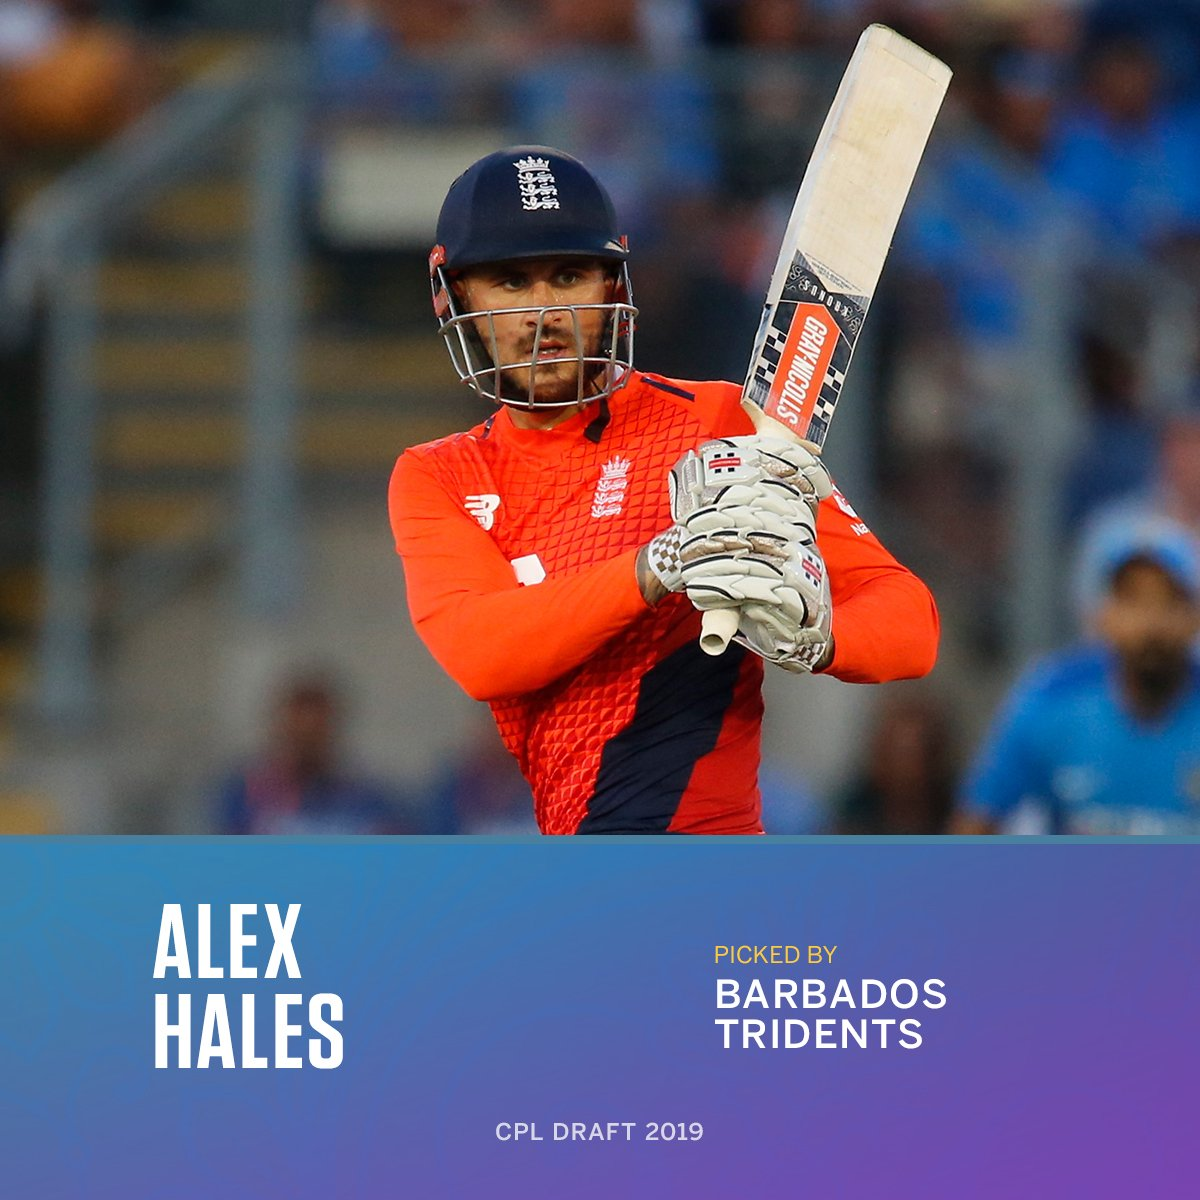 After being left out from England's World Cup squad, Alex Hales is the first pick in the 2019 #CPLDraft - he'll make his Caribbean Premier League debut this year for the Barbados Tridents.